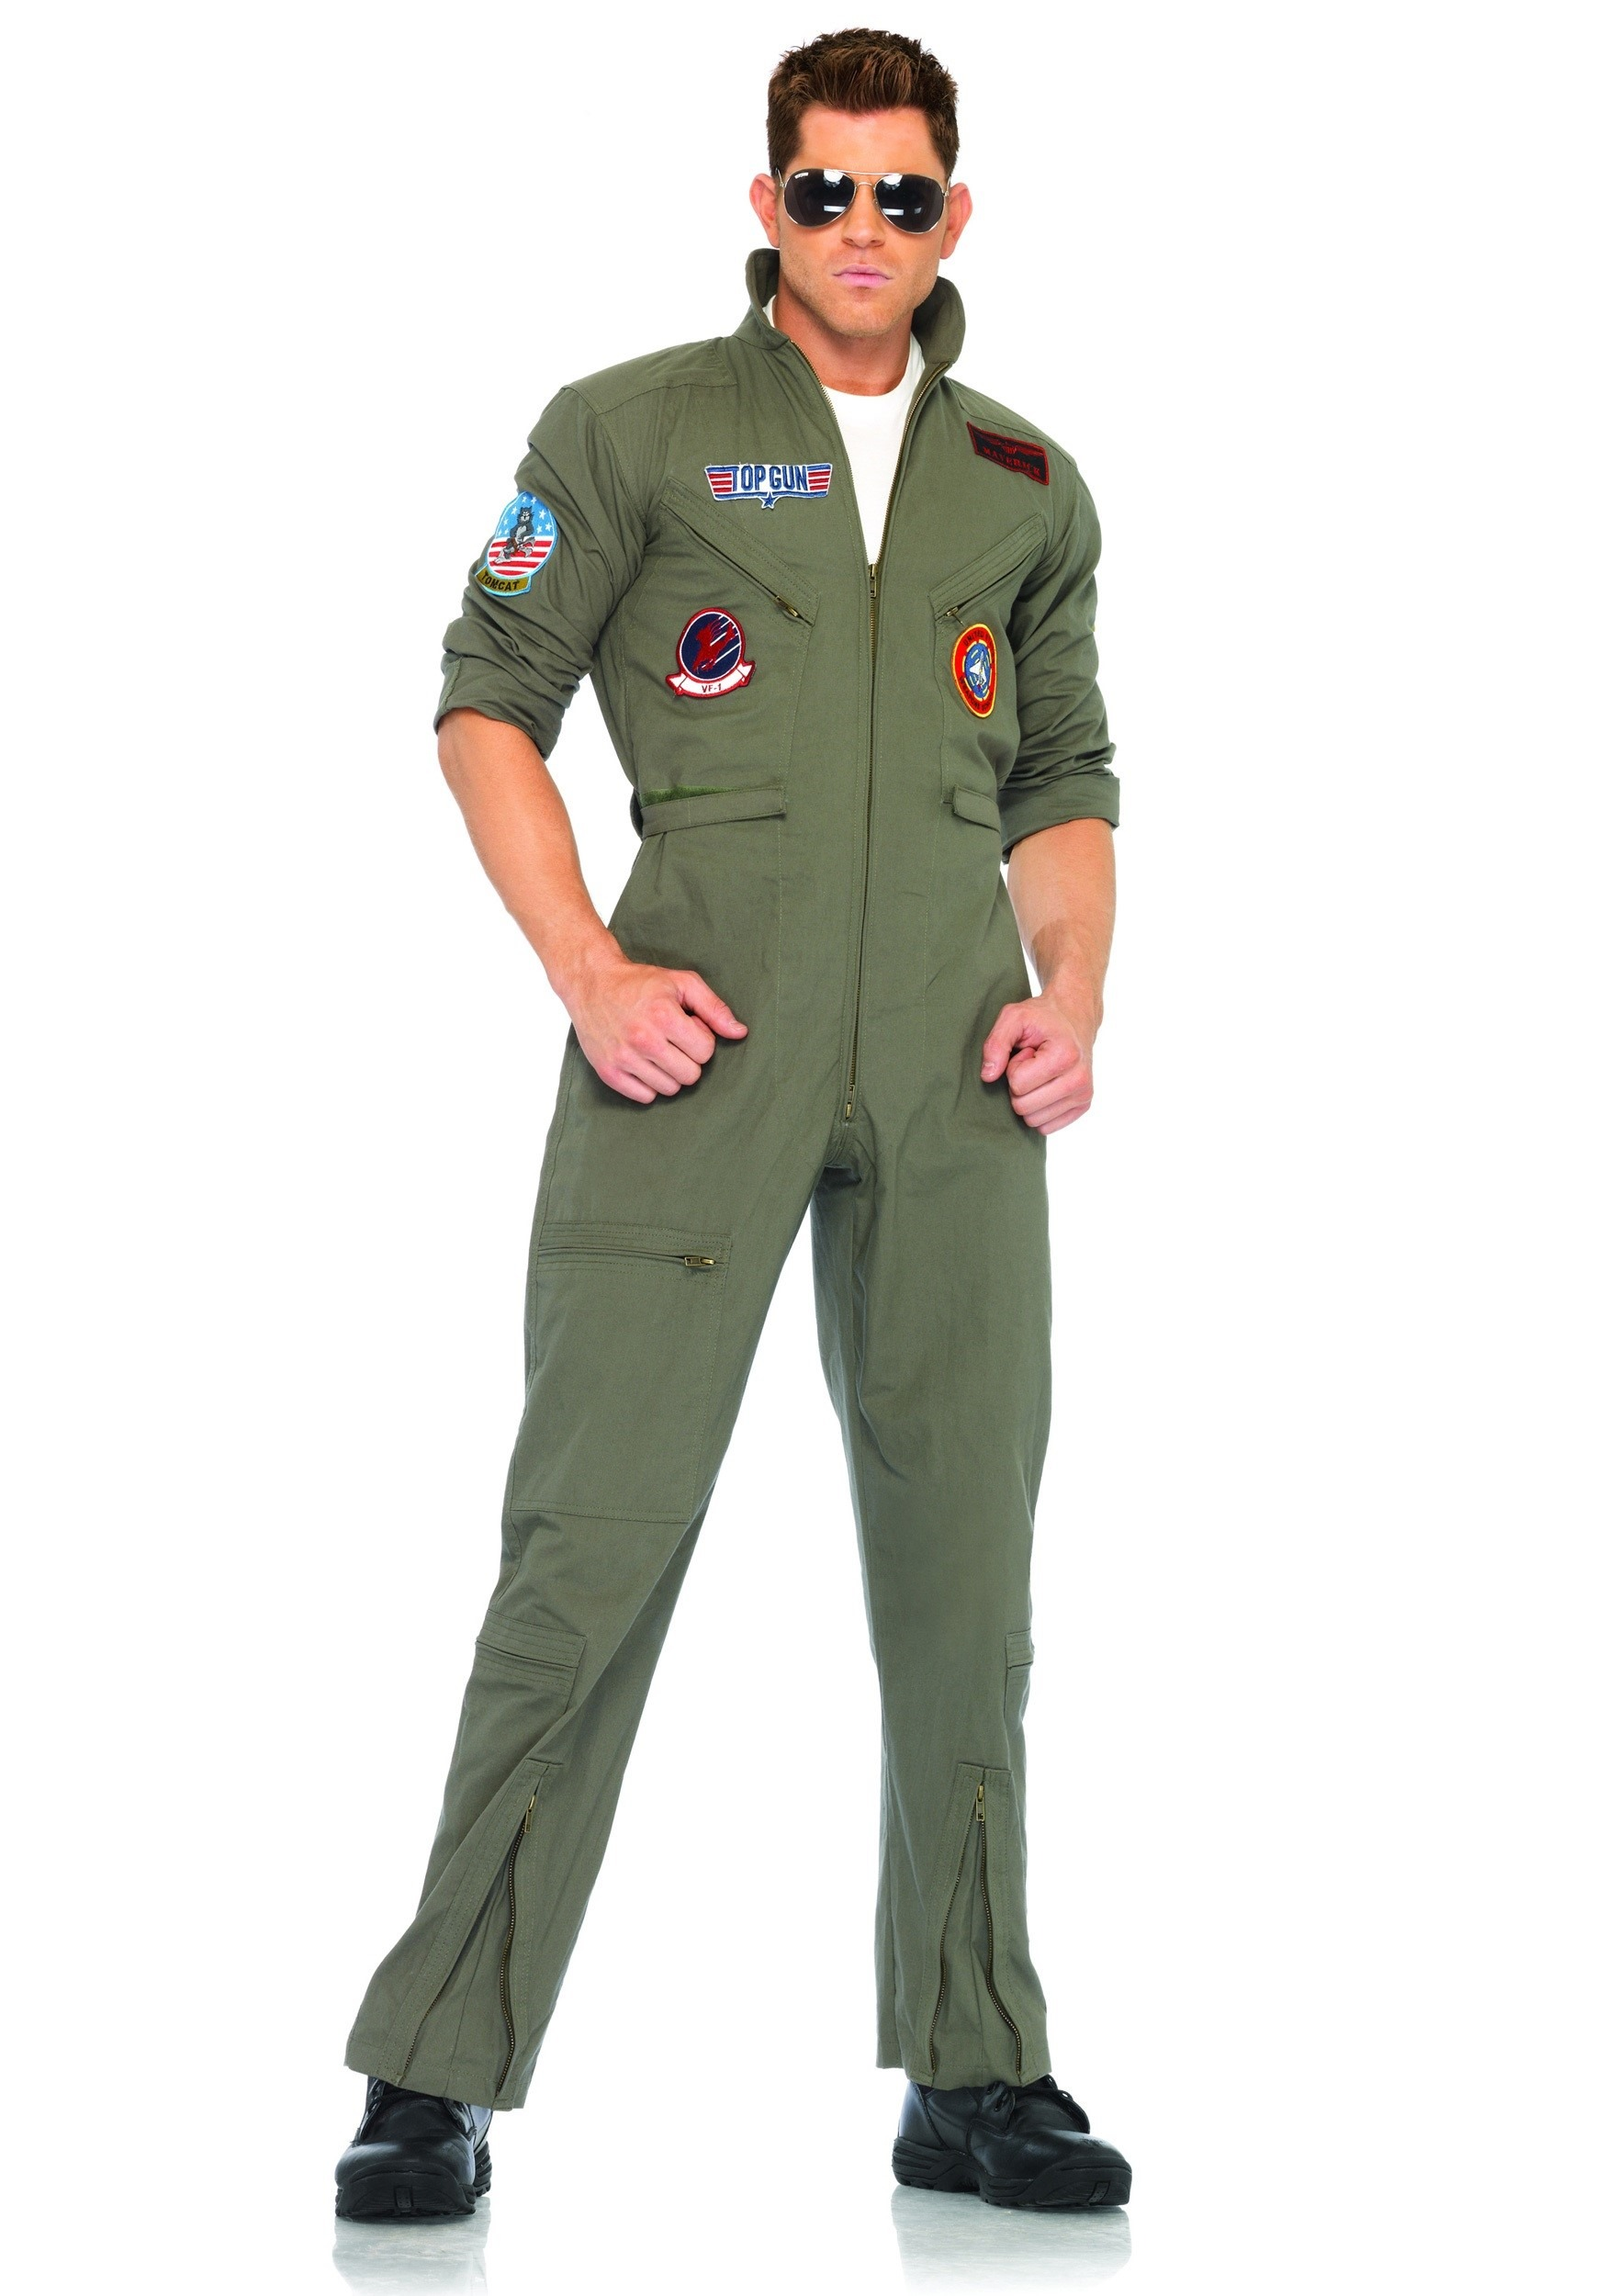 Army costumes camo soldier outfits halloweencostumes mens top gun flight suit solutioingenieria Image collections